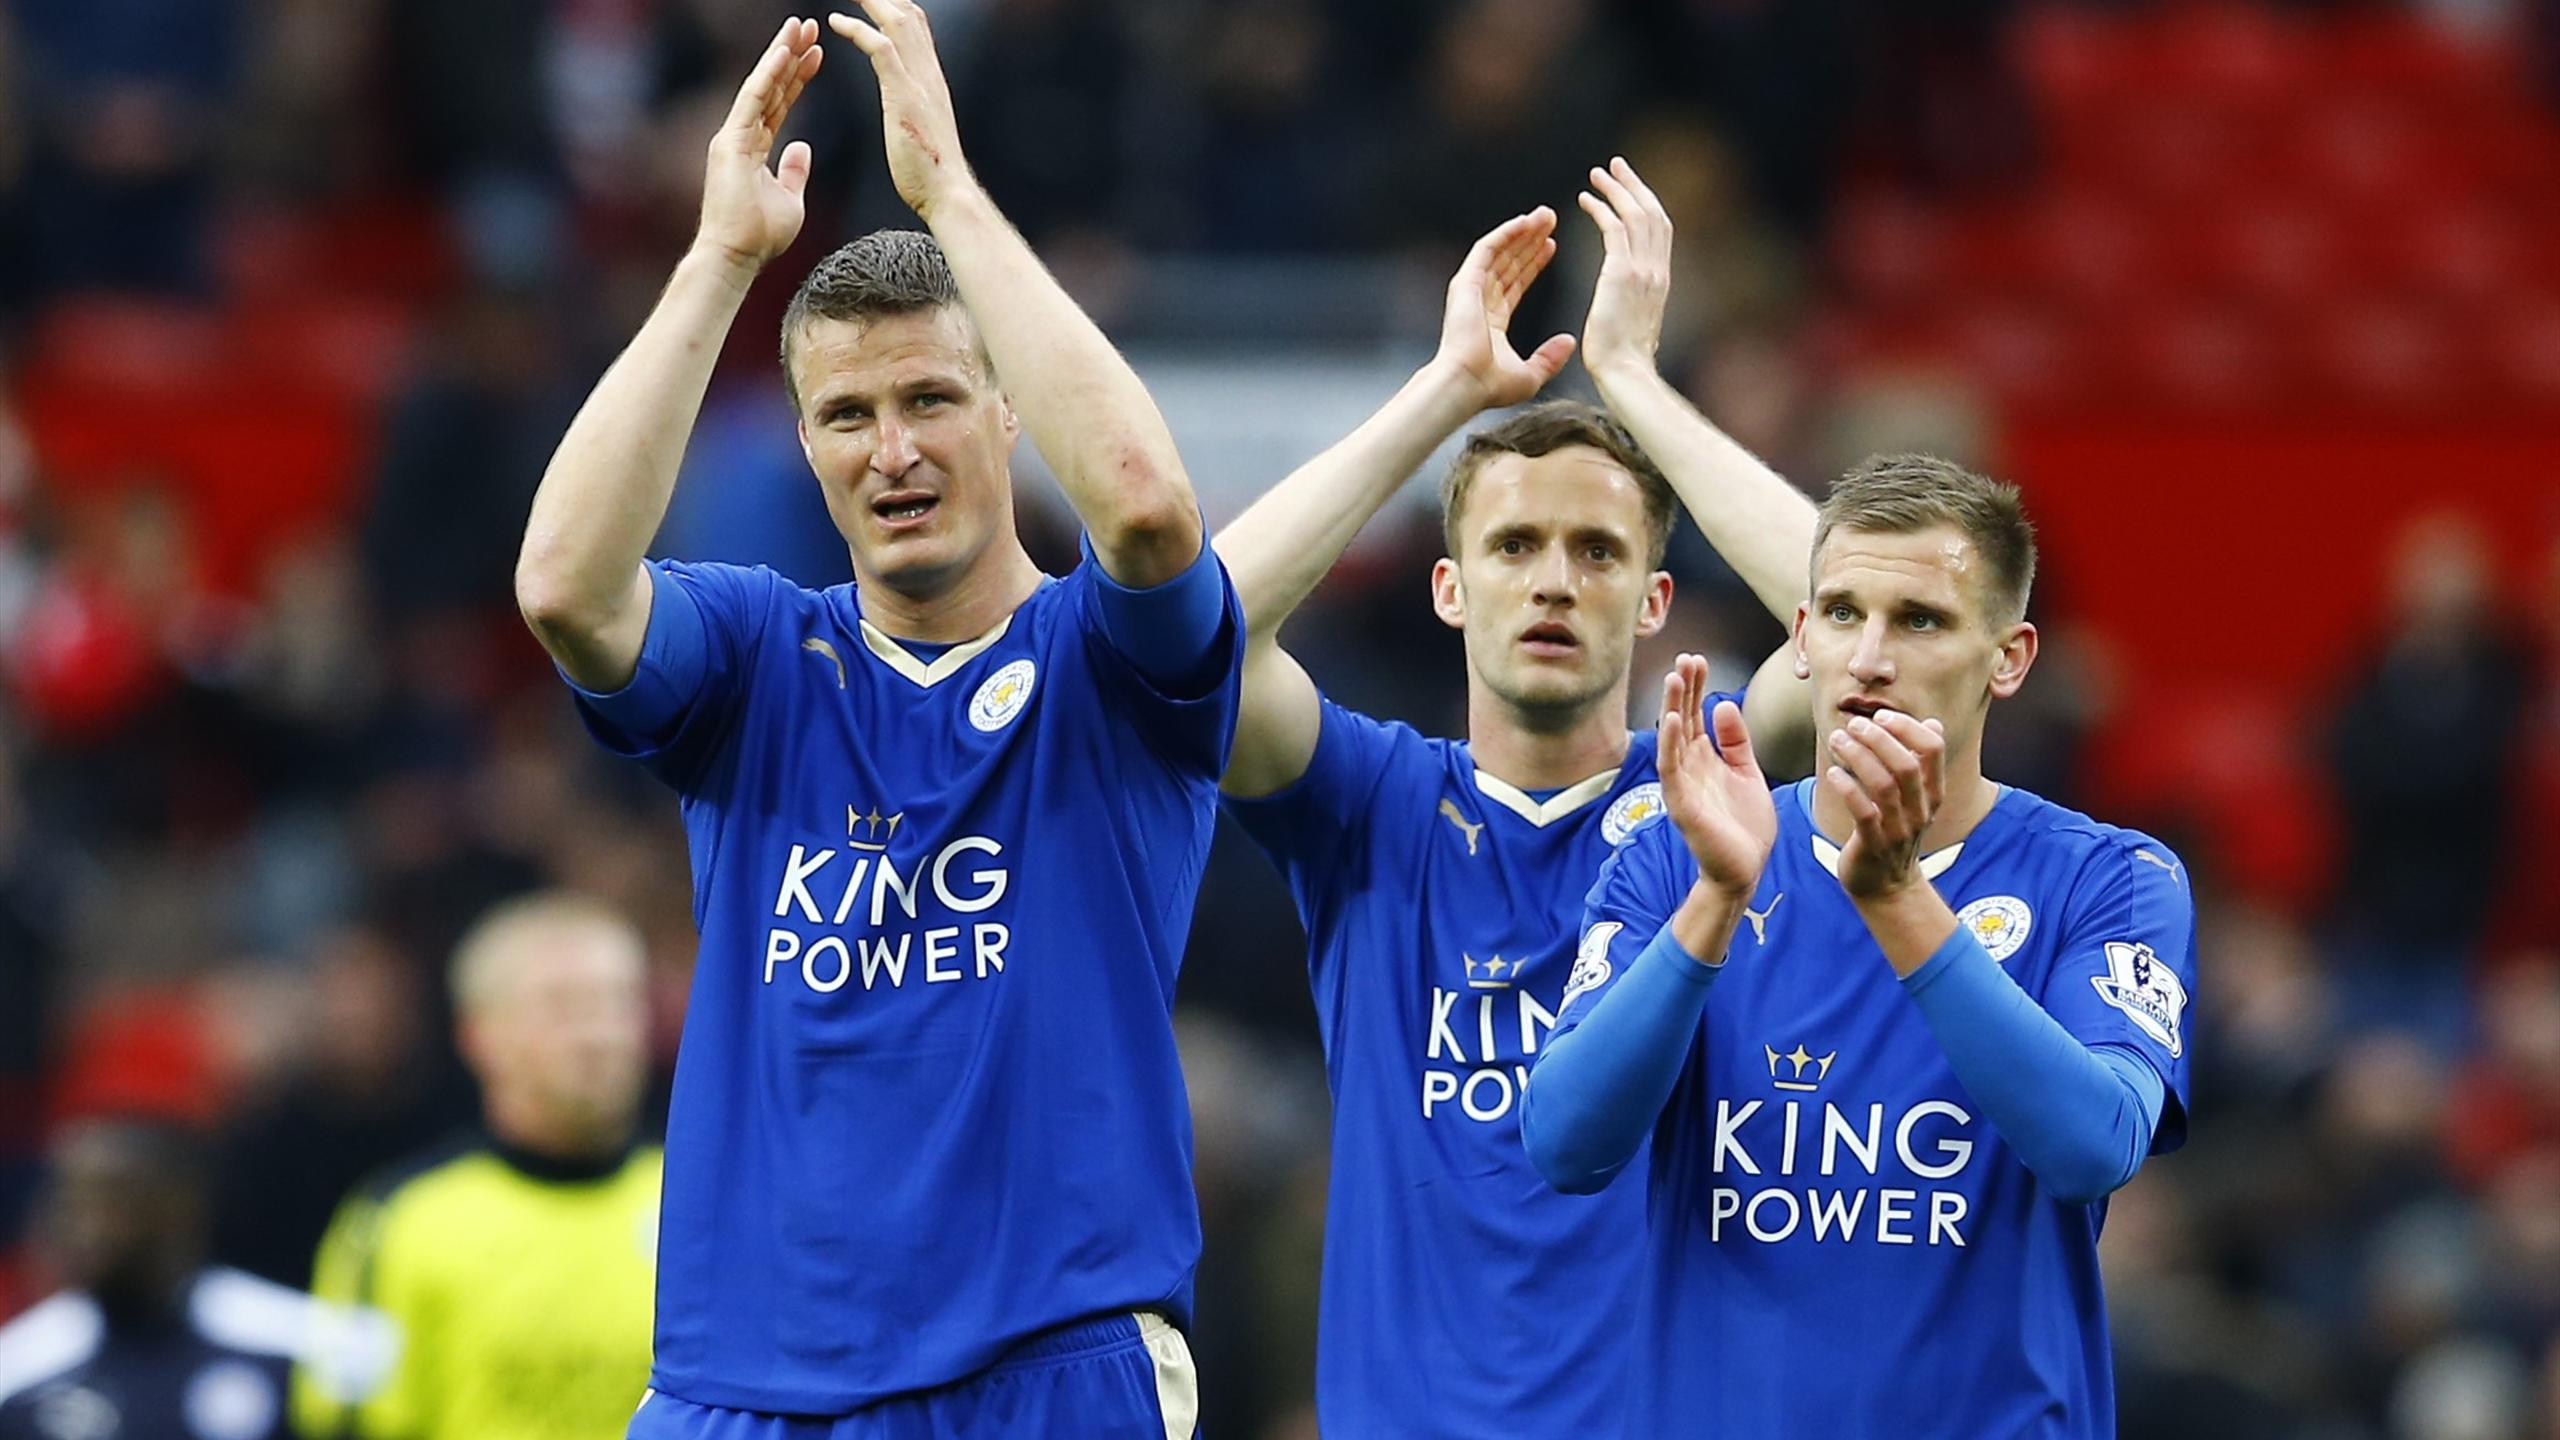 Leicester City's Robert Huth applauds the fans at the end of the game